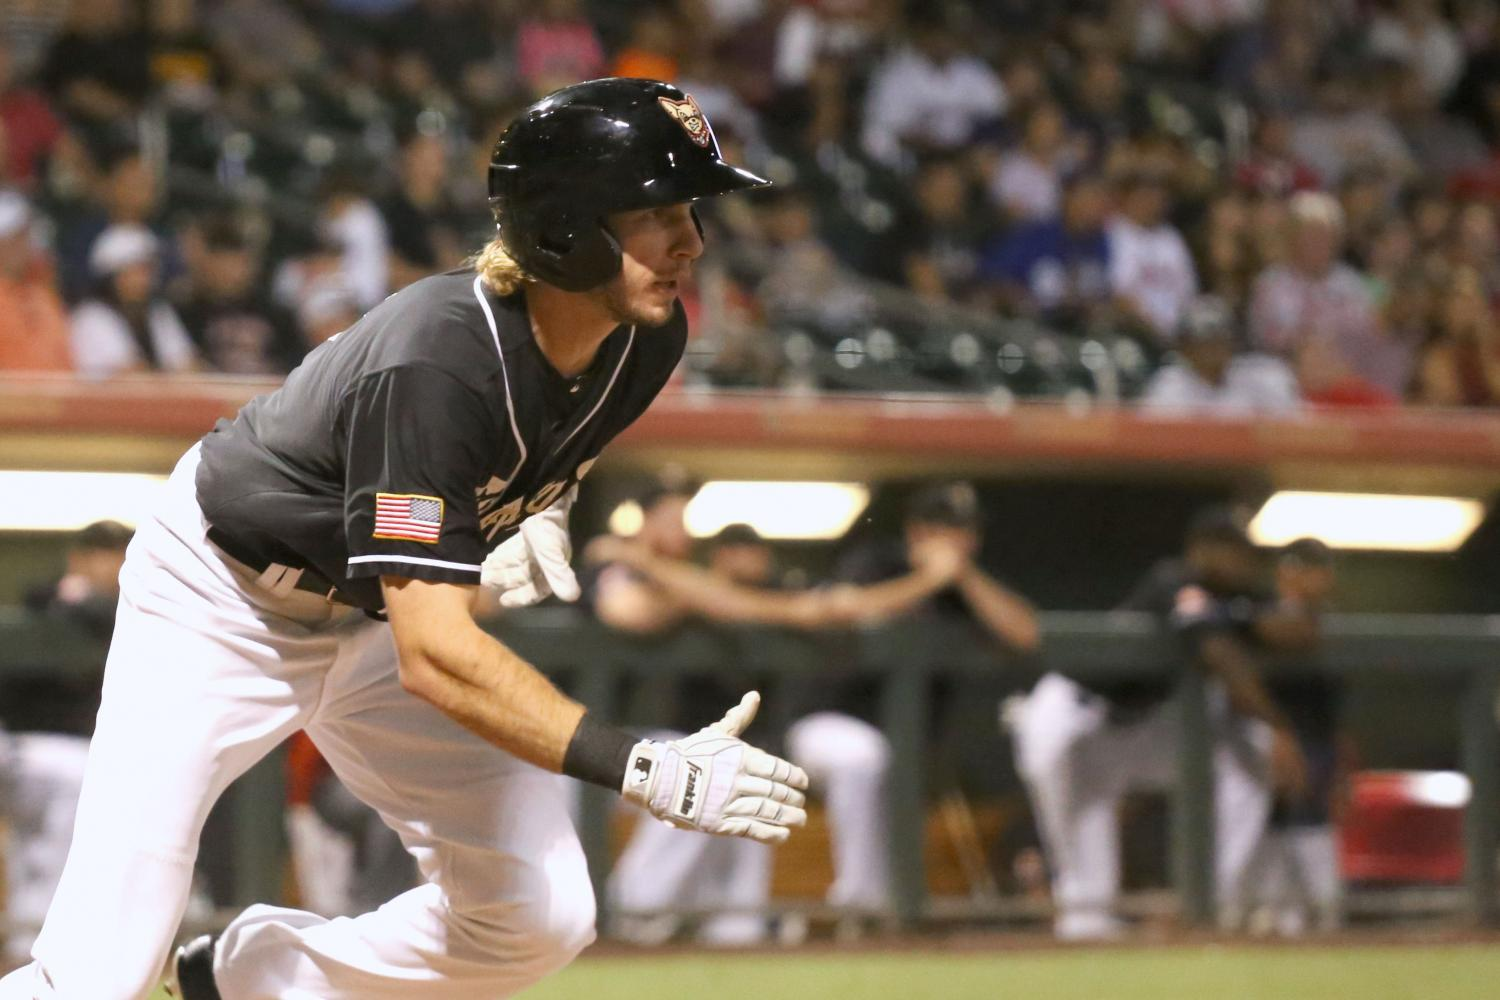 Chihuahuas beat Aces to take game one